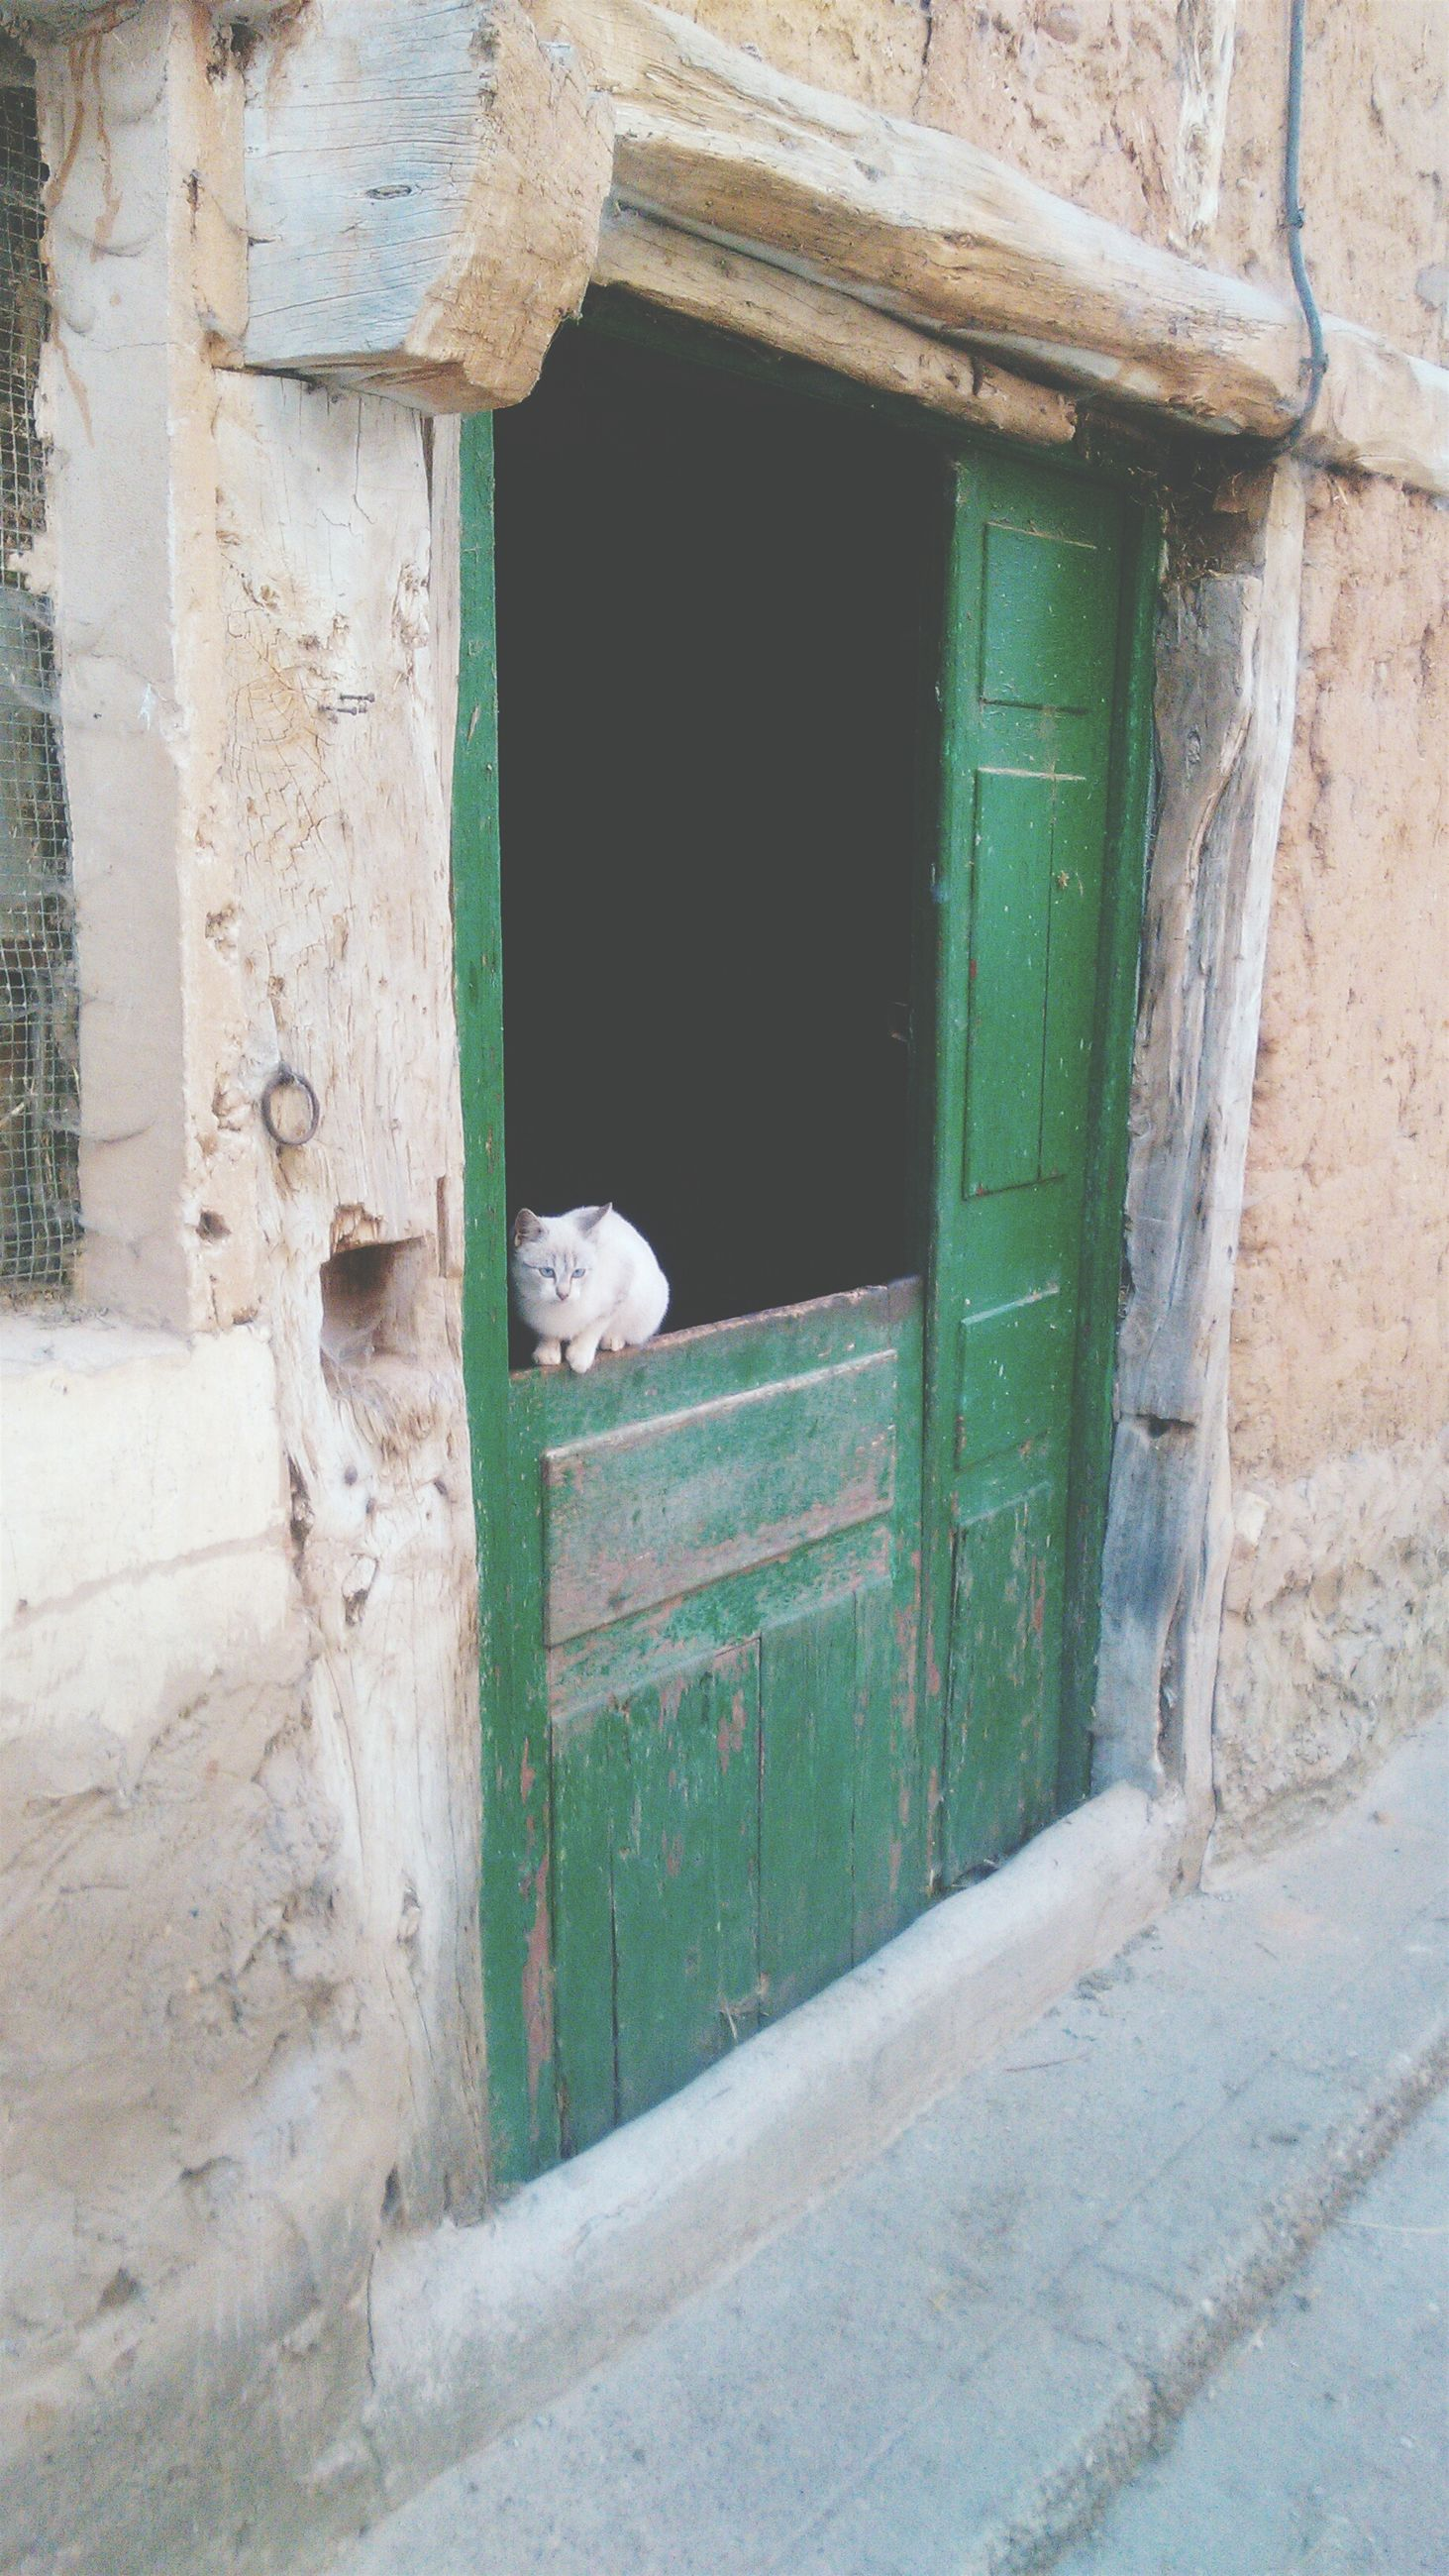 animal themes, one animal, built structure, architecture, building exterior, mammal, domestic animals, window, house, pets, wall - building feature, domestic cat, wildlife, cat, outdoors, day, no people, door, brick wall, stone wall